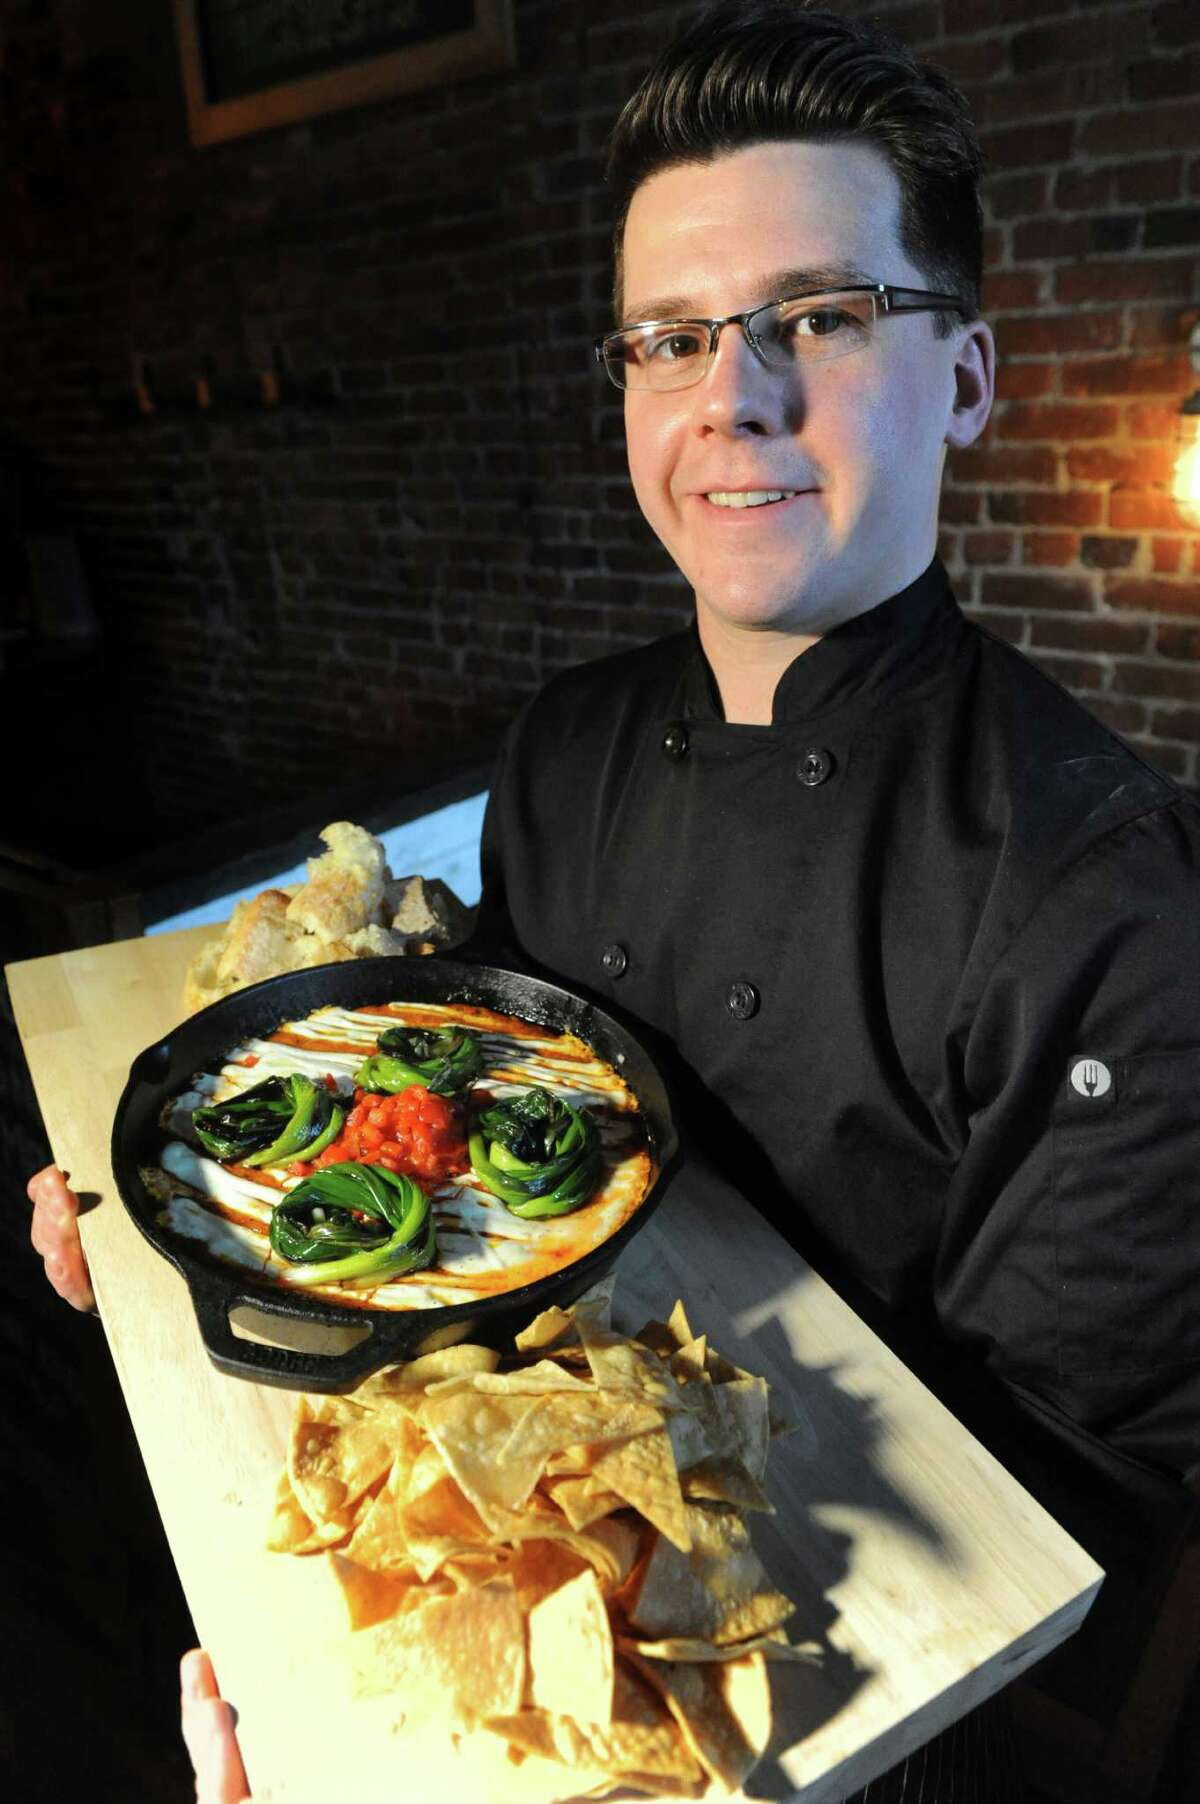 Chef Rich Matthews and his Bacon Remesco Dip with goat cheese sour cream and served with tortilla chips and bread on Thursday, Jan. 28, 2016, at The Shop in Troy, N.Y. (Cindy Schultz / Times Union)